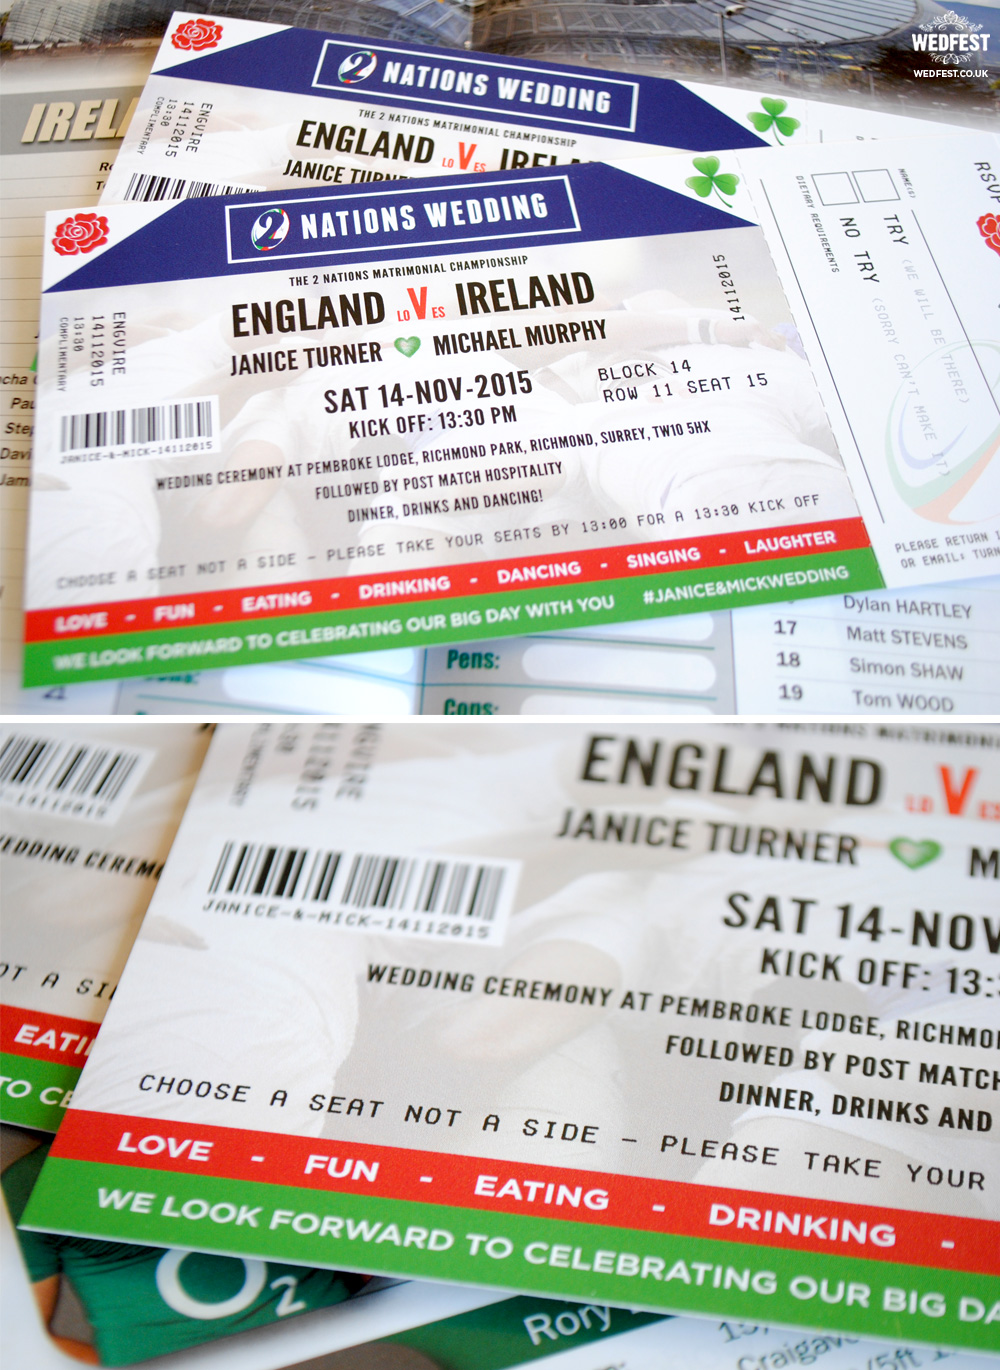 Ireland vs England Rugby Ticket Wedding Invitations | WEDFEST